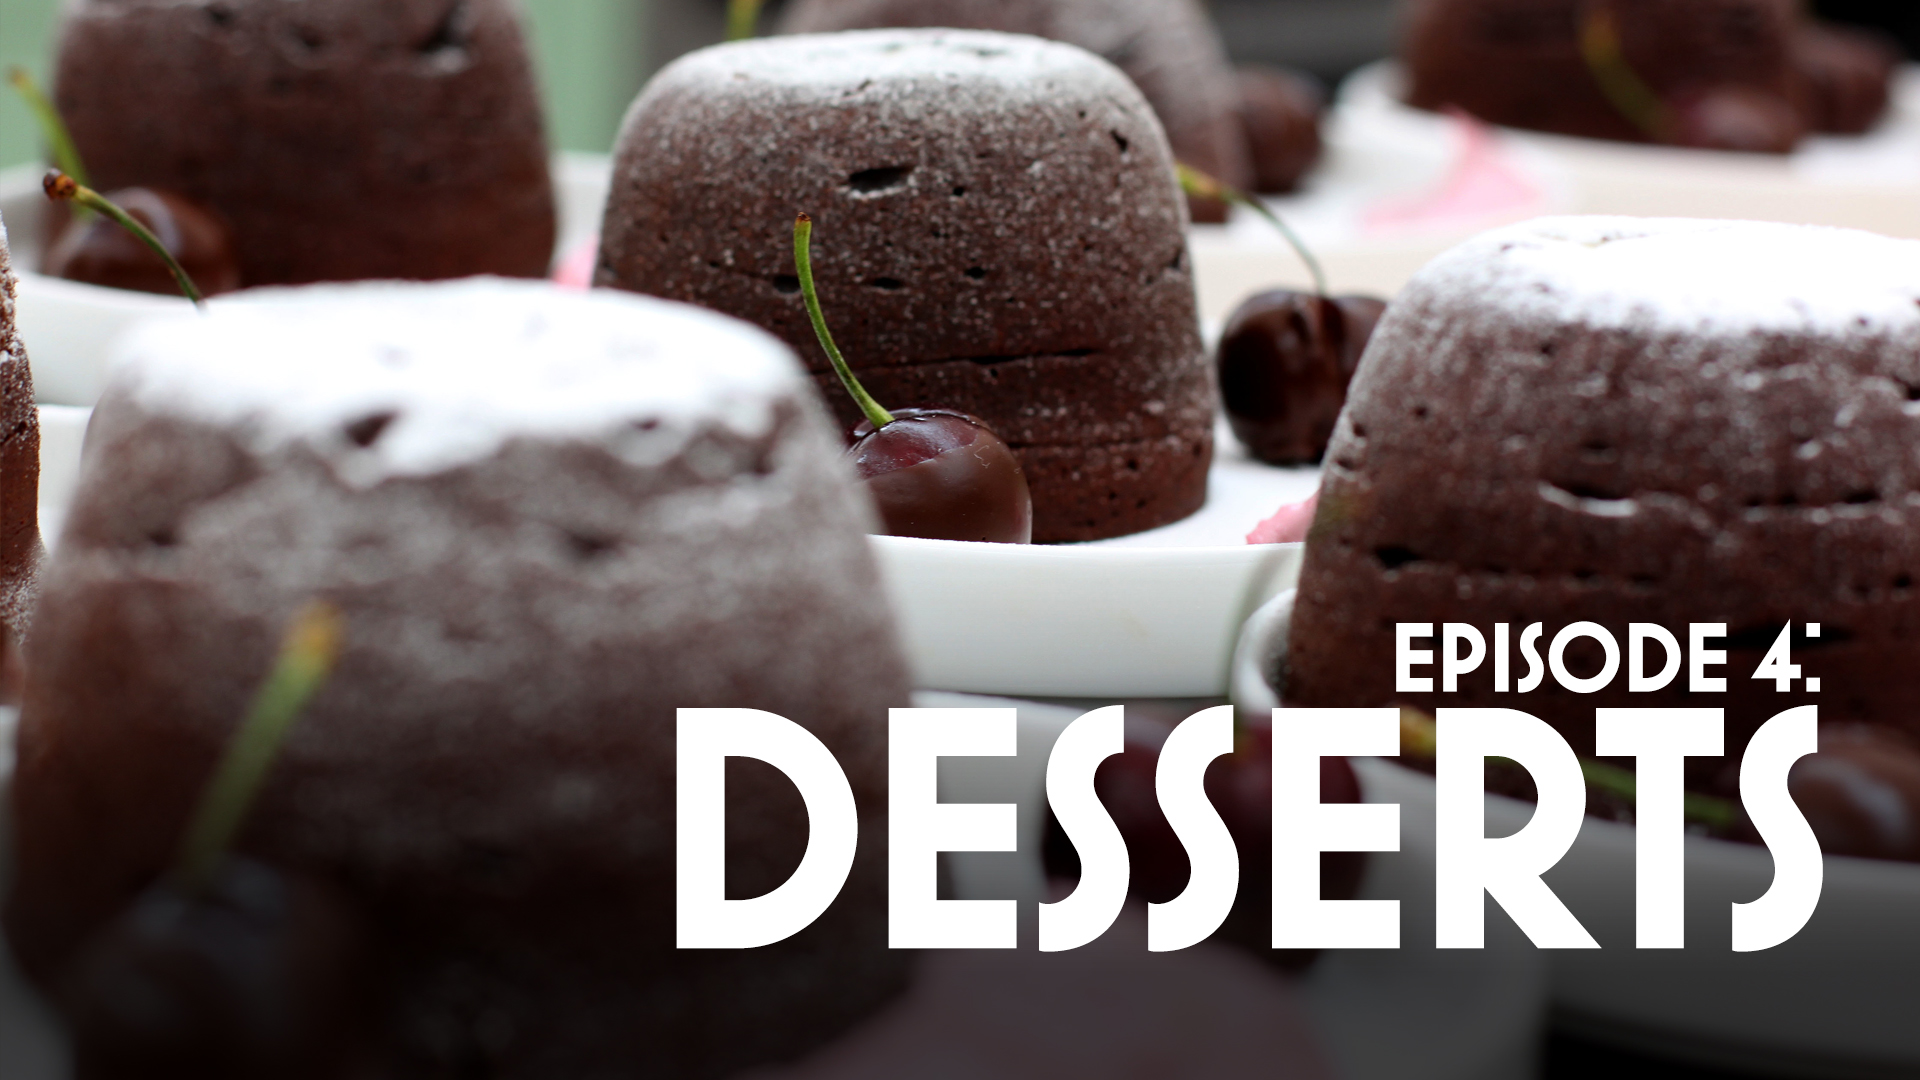 Great-British-Baking-Show-Episode-4-Desserts